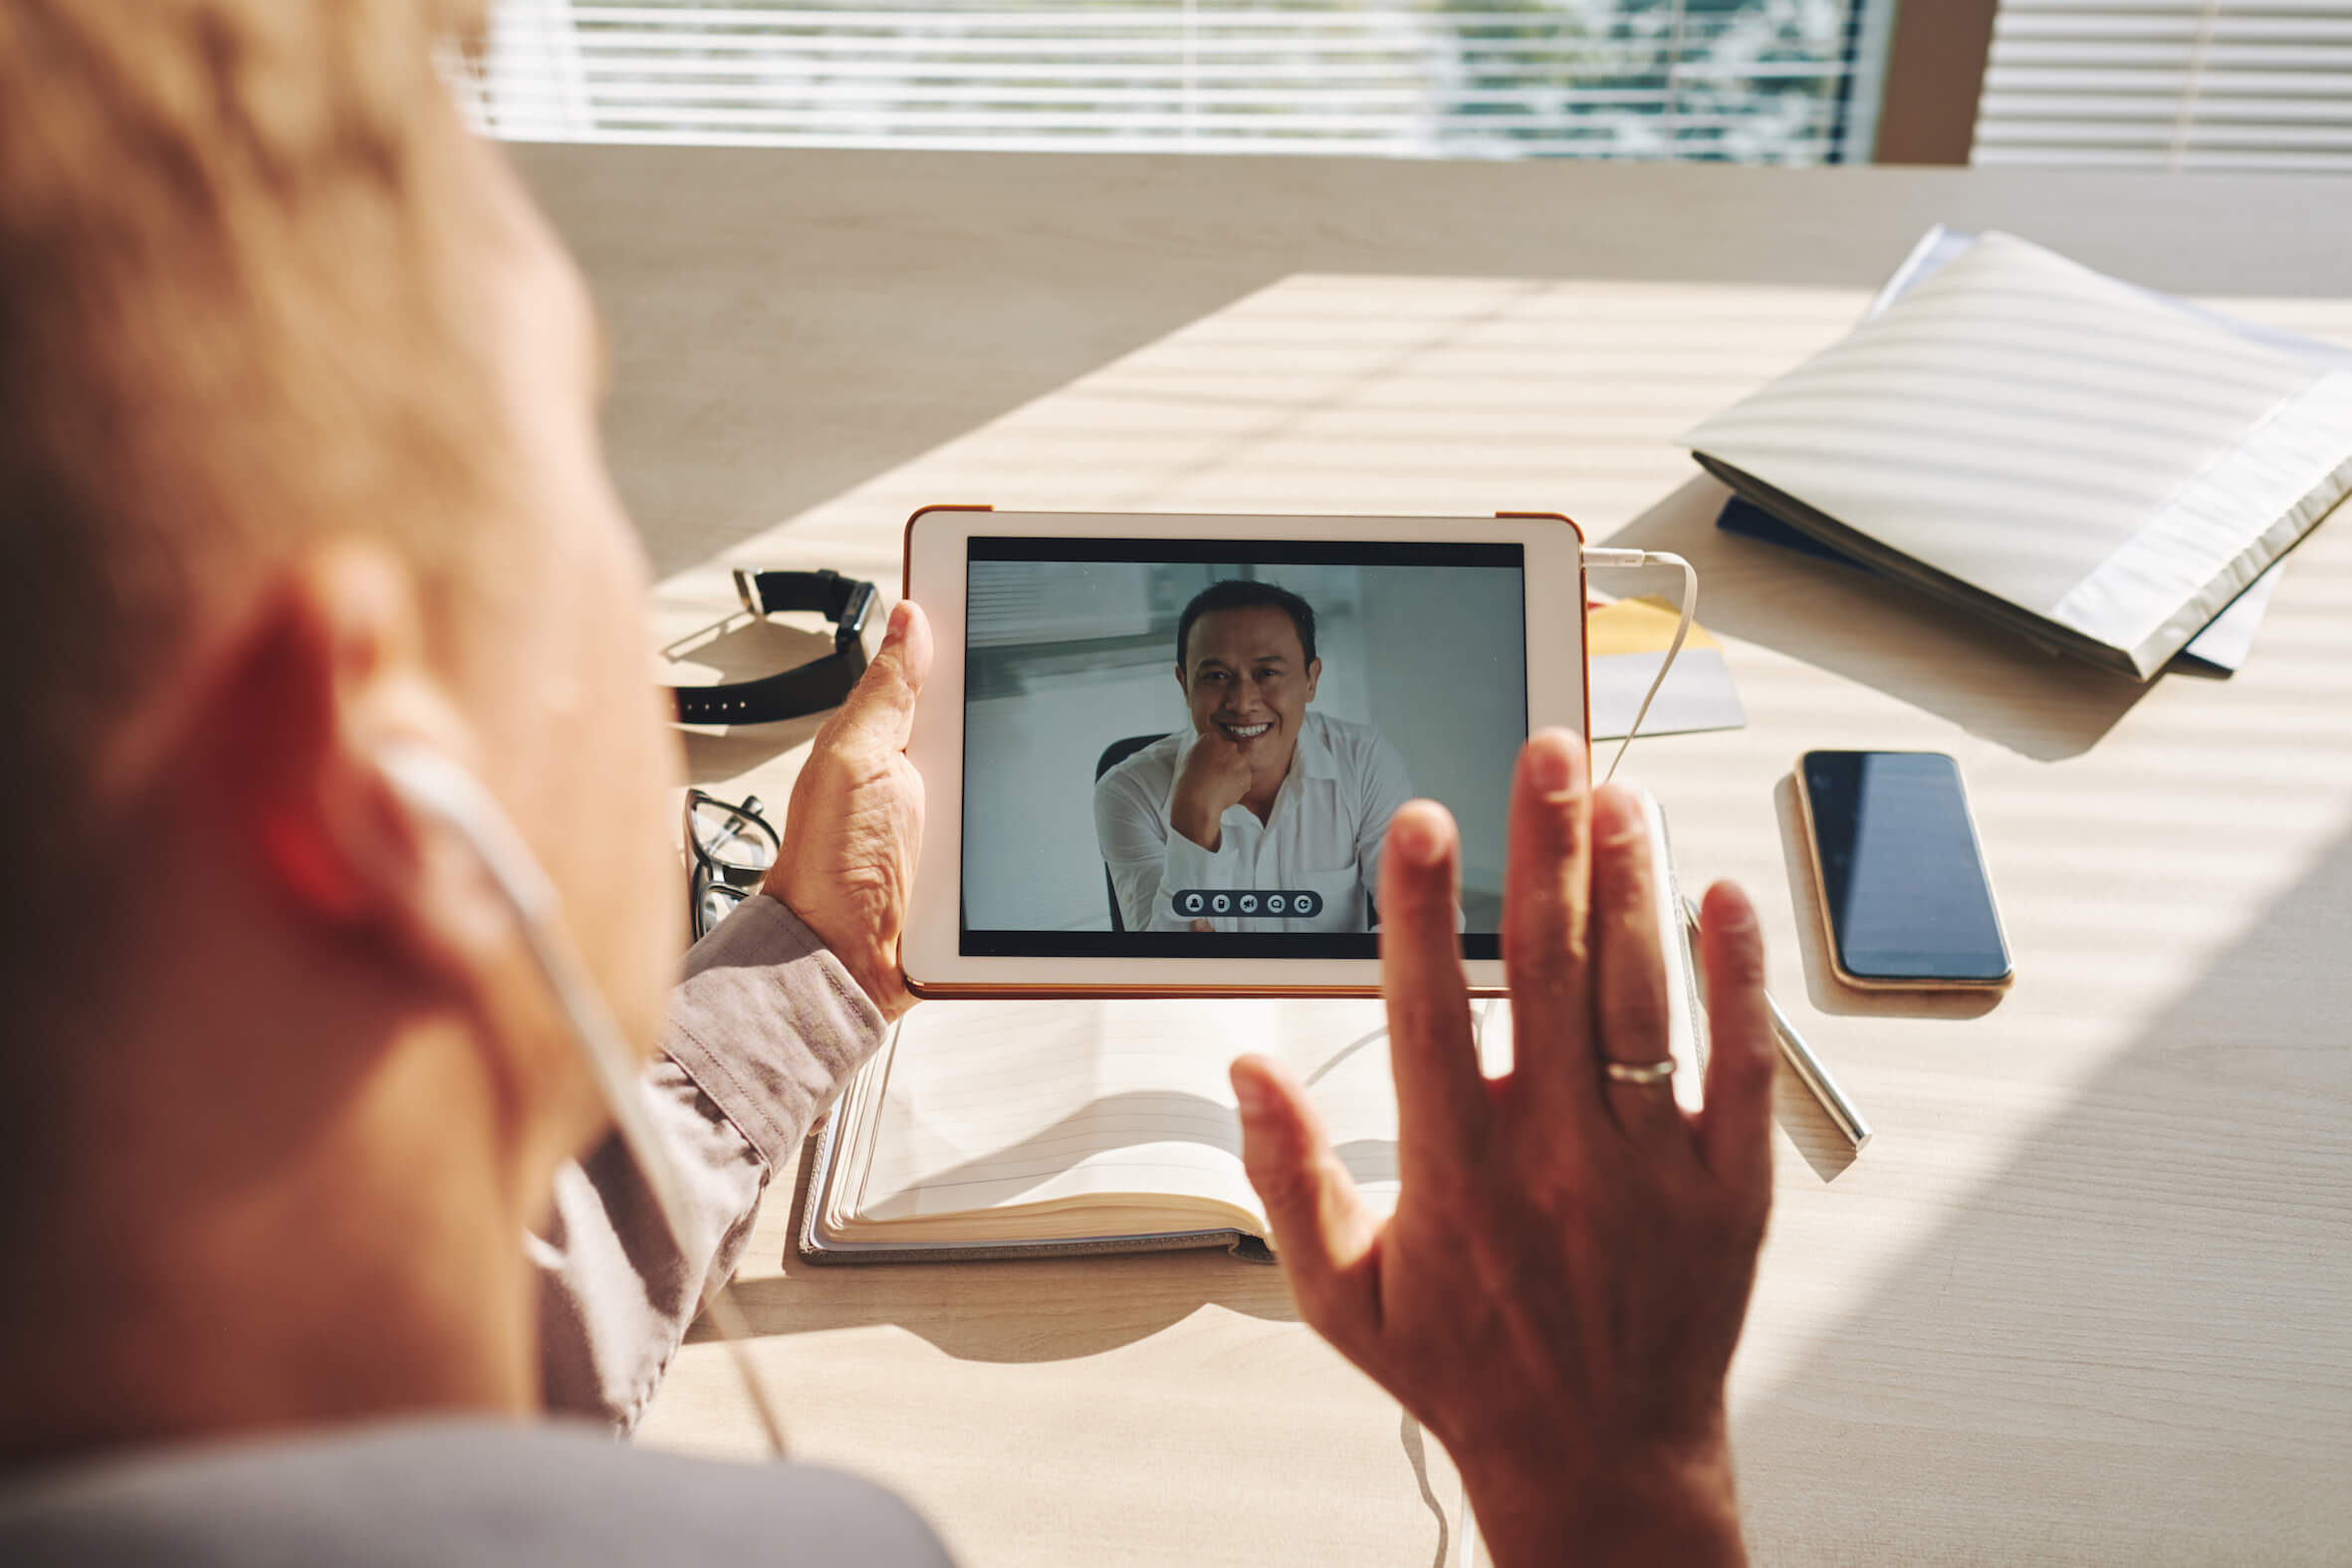 video-conference-on-tablet-2CEN3F8-2